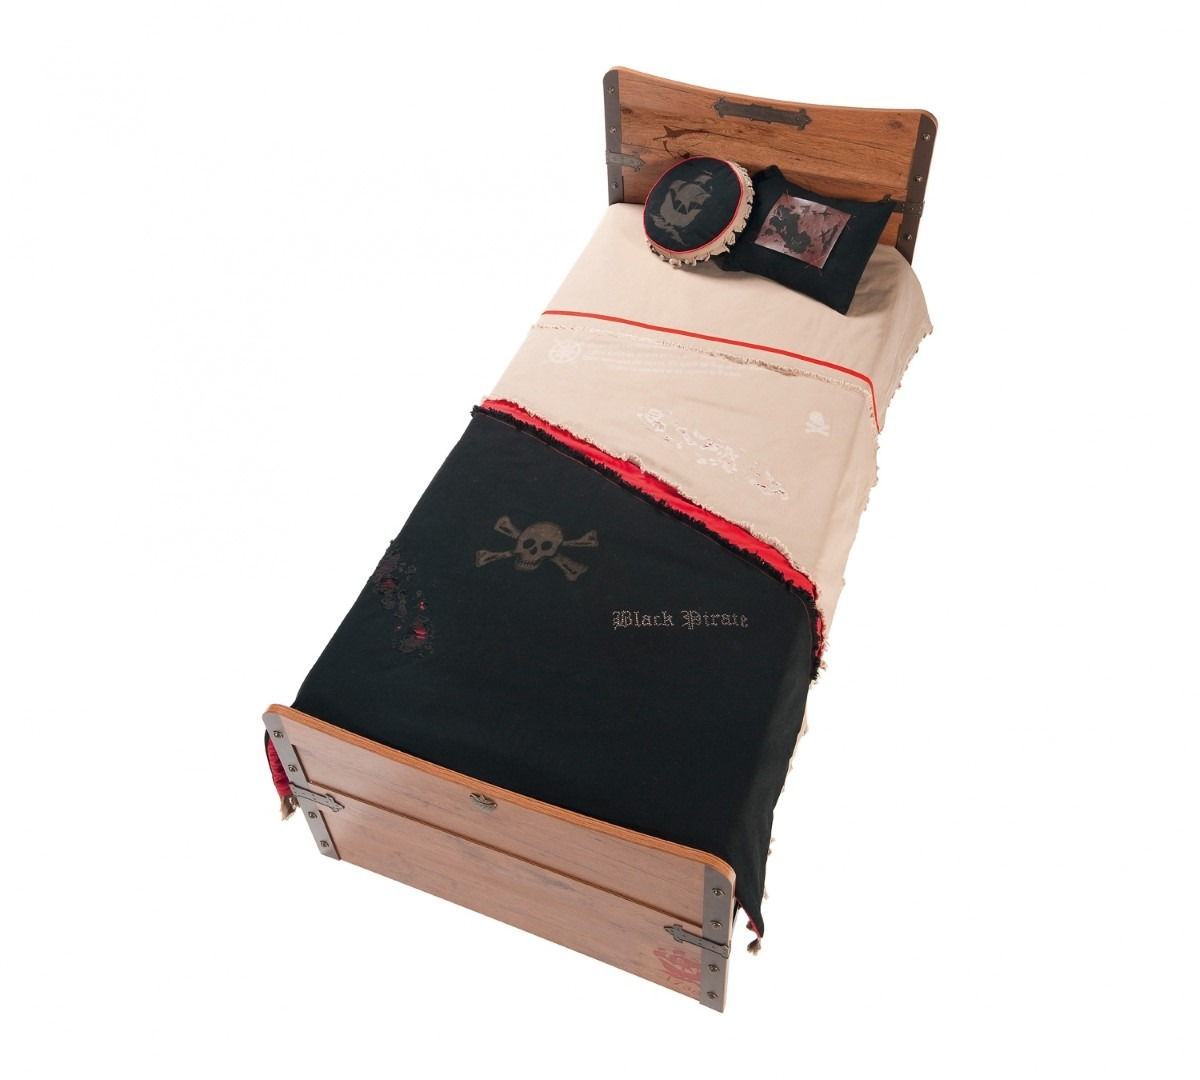 Black-Pirate-Bed-Cover1